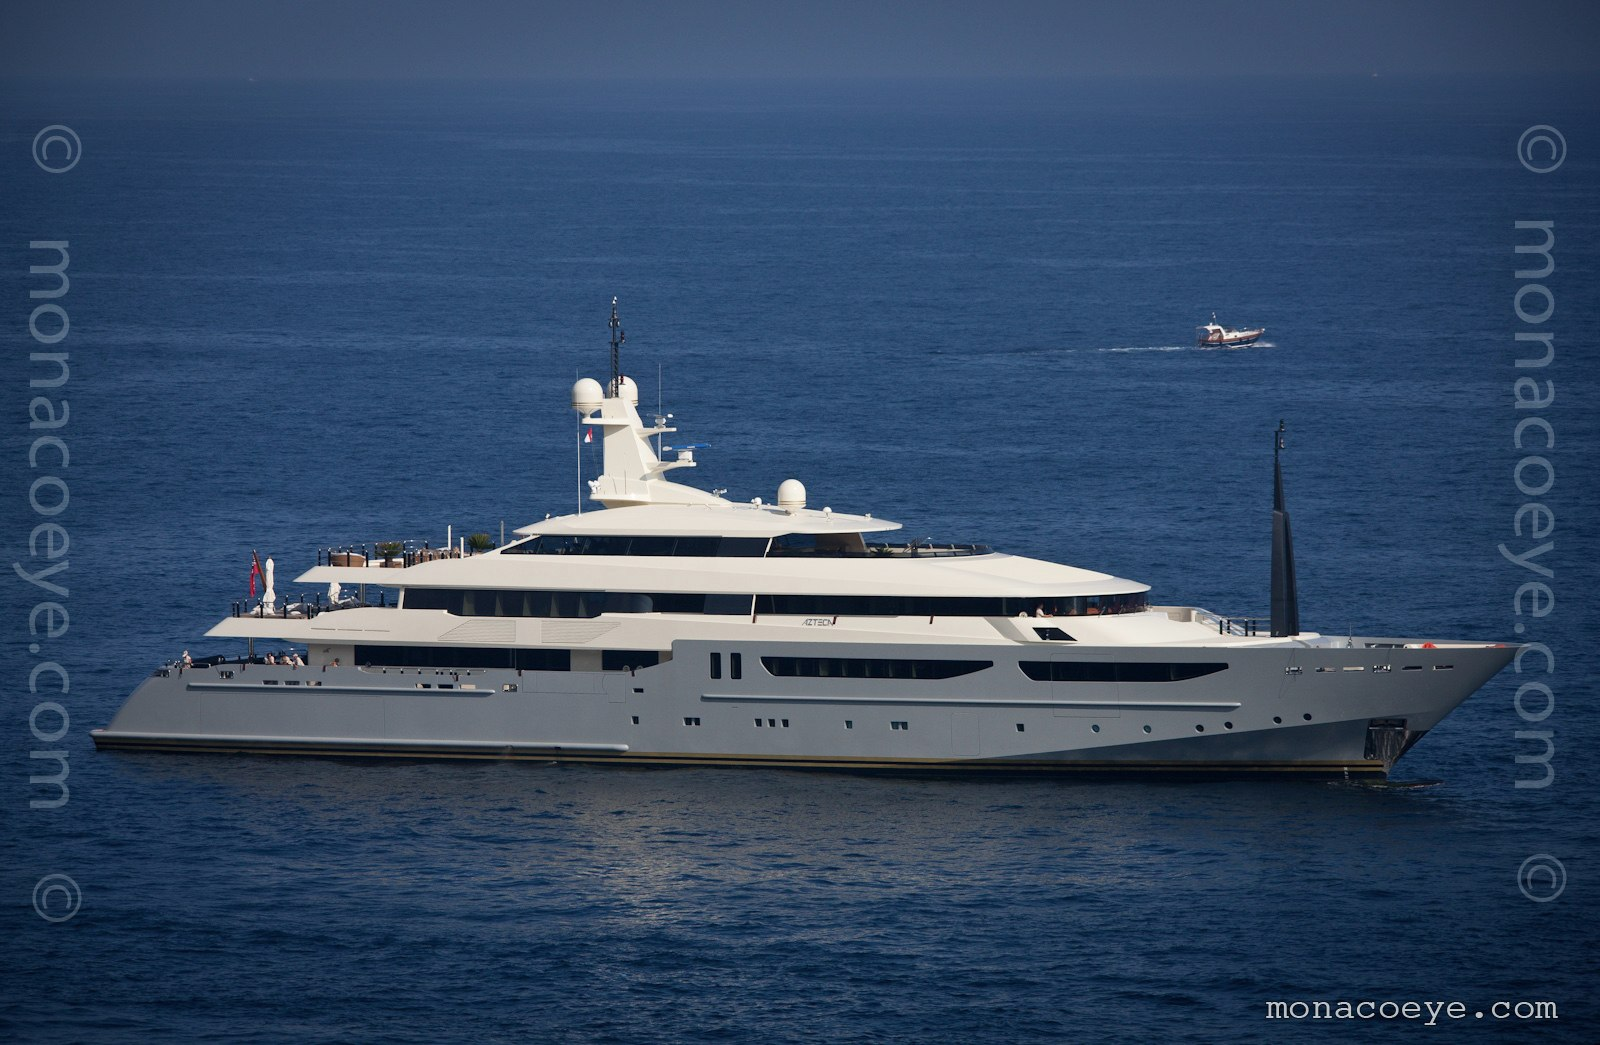 Azteca yacht. Formerly Clarena II. Built by CRN, designed by Nuvolari Lenard, delivered in 2009, 72 metres, build number 124